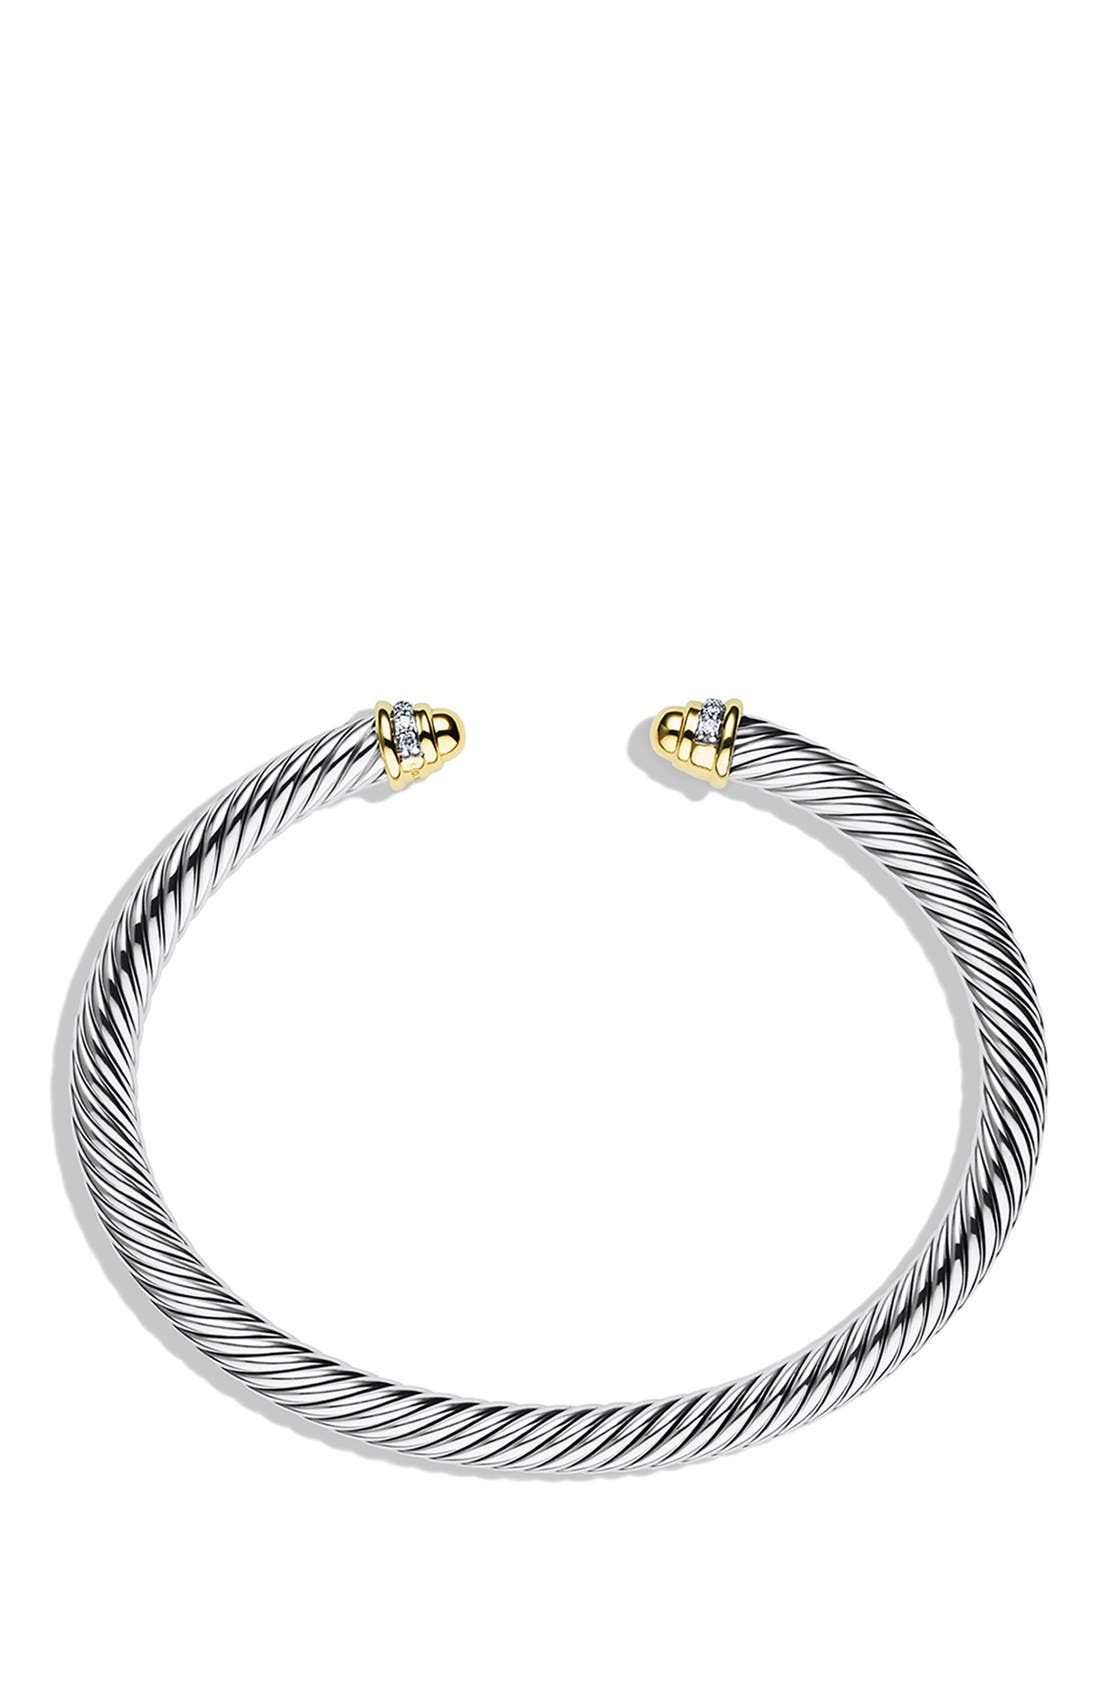 Cable Classics Bracelet with 18K Gold Domes & Diamonds, 5mm,                             Alternate thumbnail 2, color,                             Gold Dome